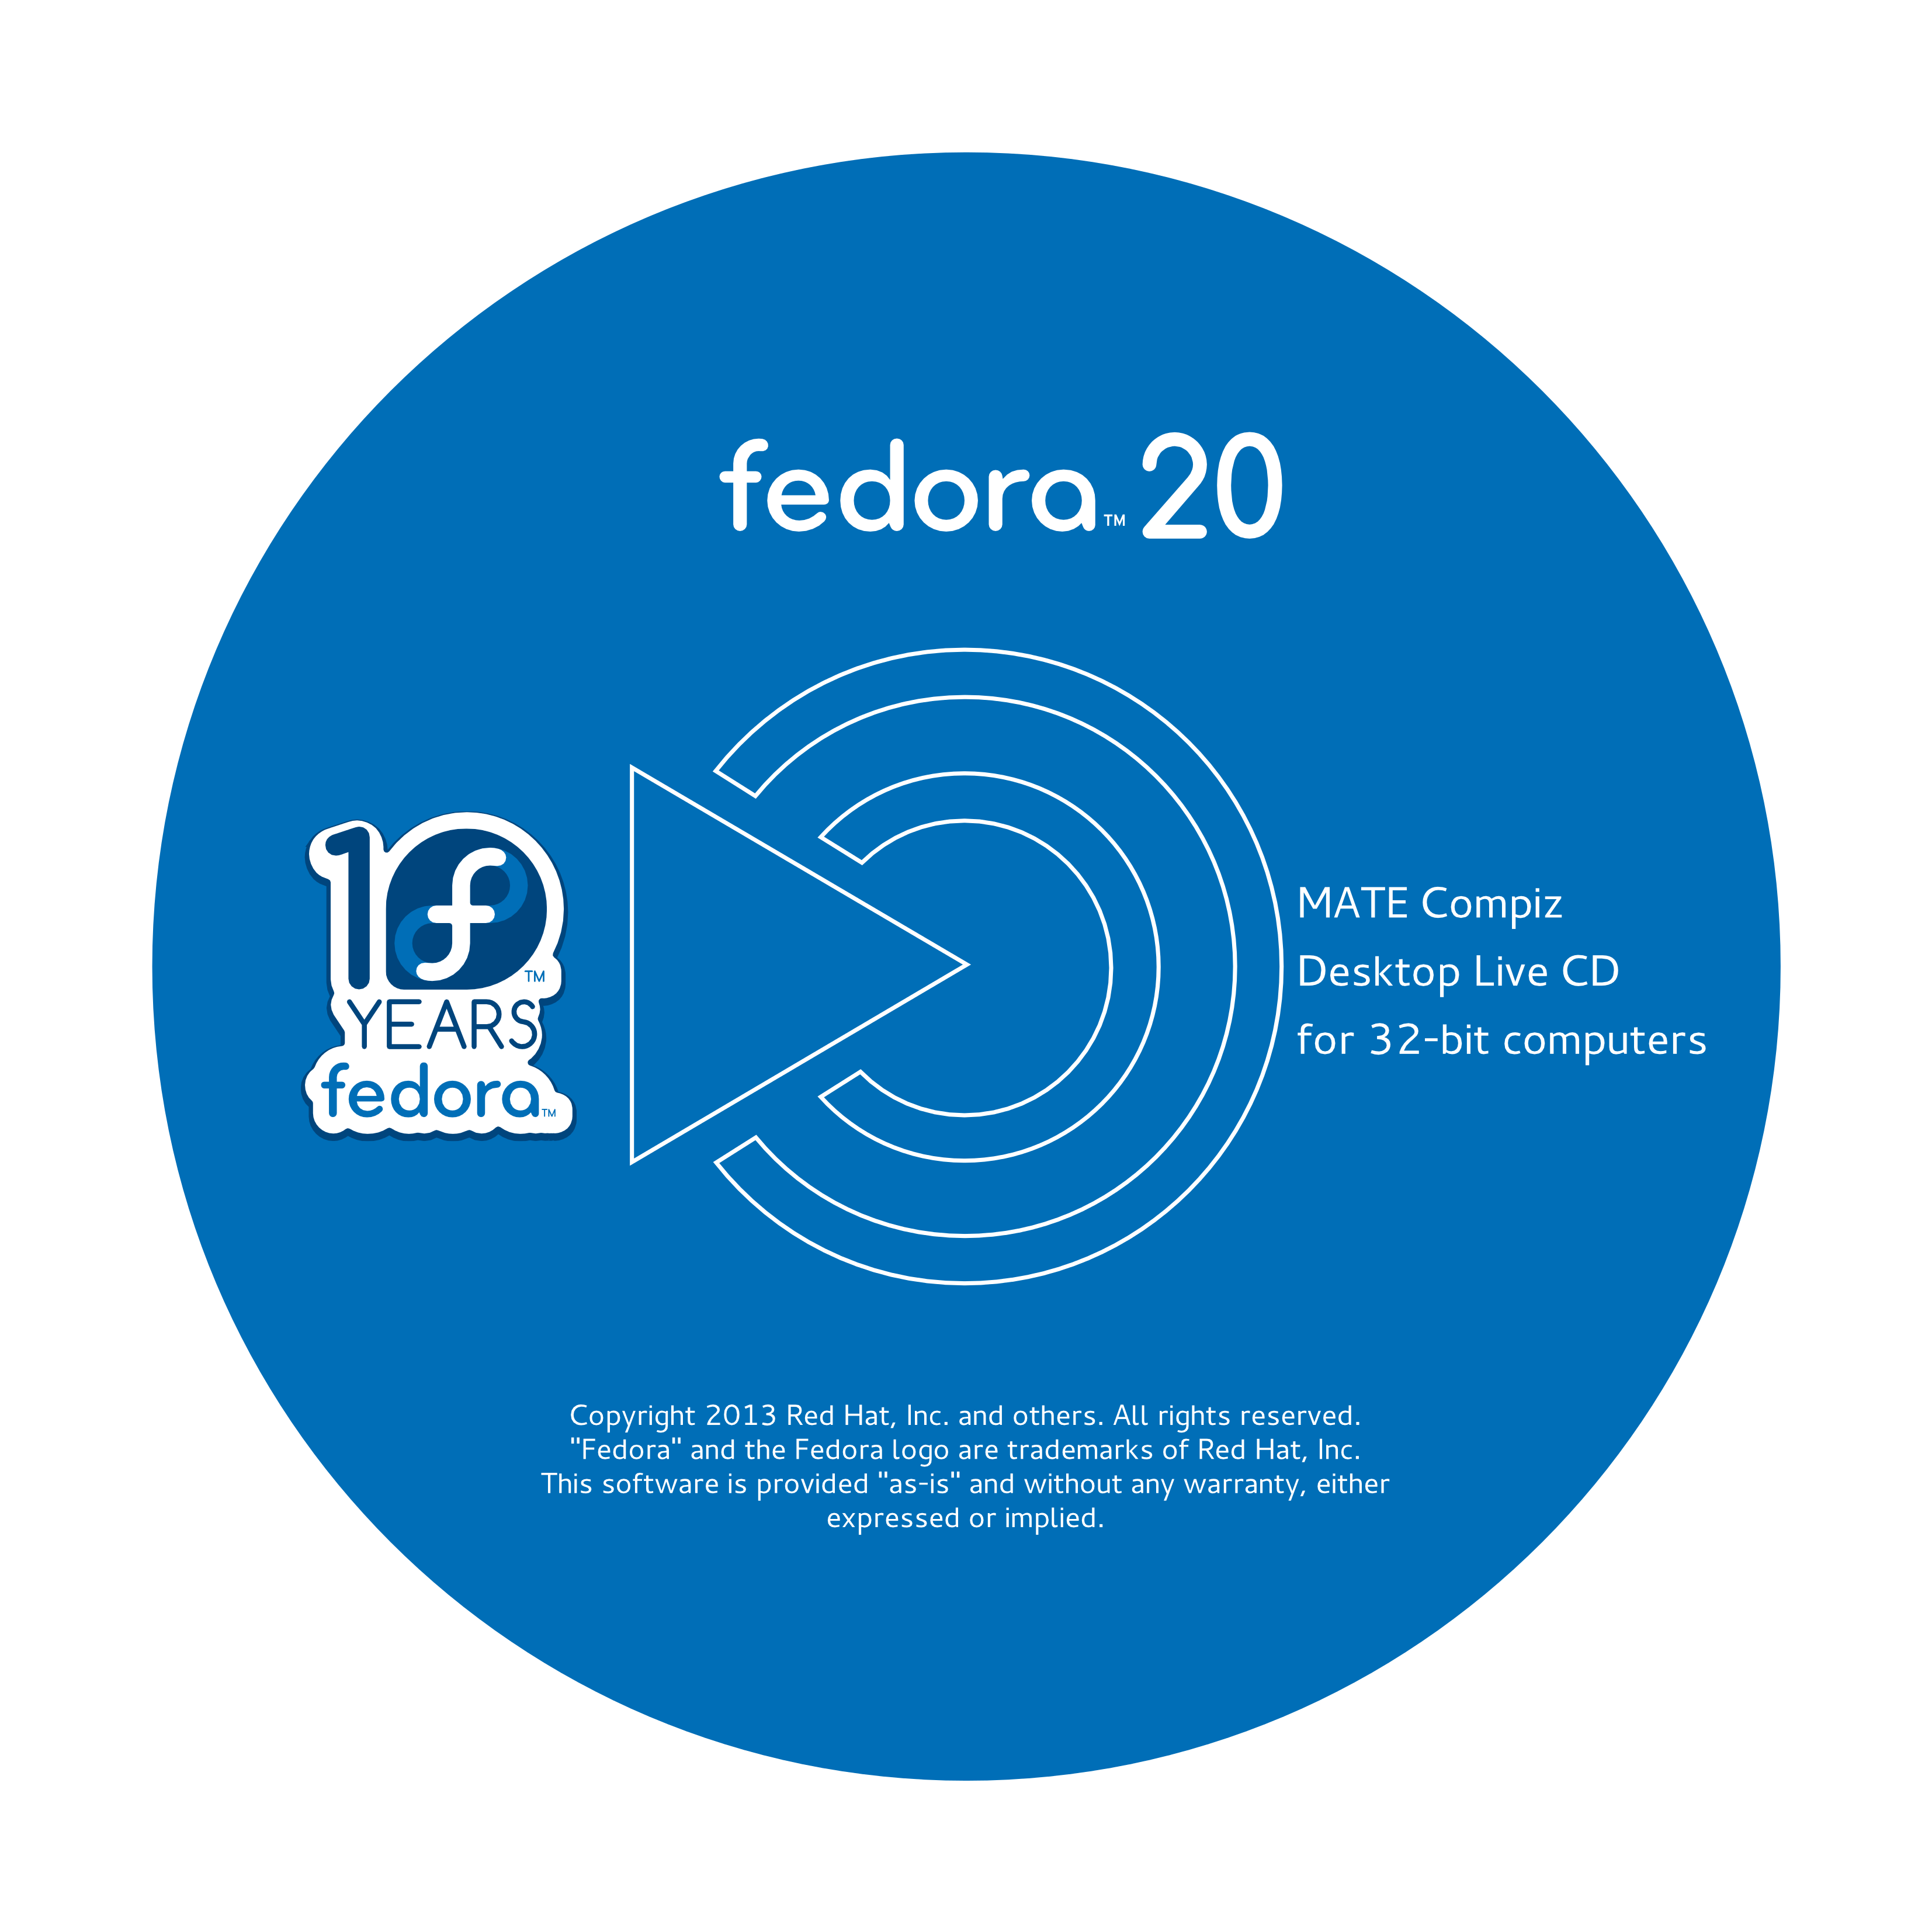 File:Fedora-20-livemedia-label-mate compiz-32 600dpi.png